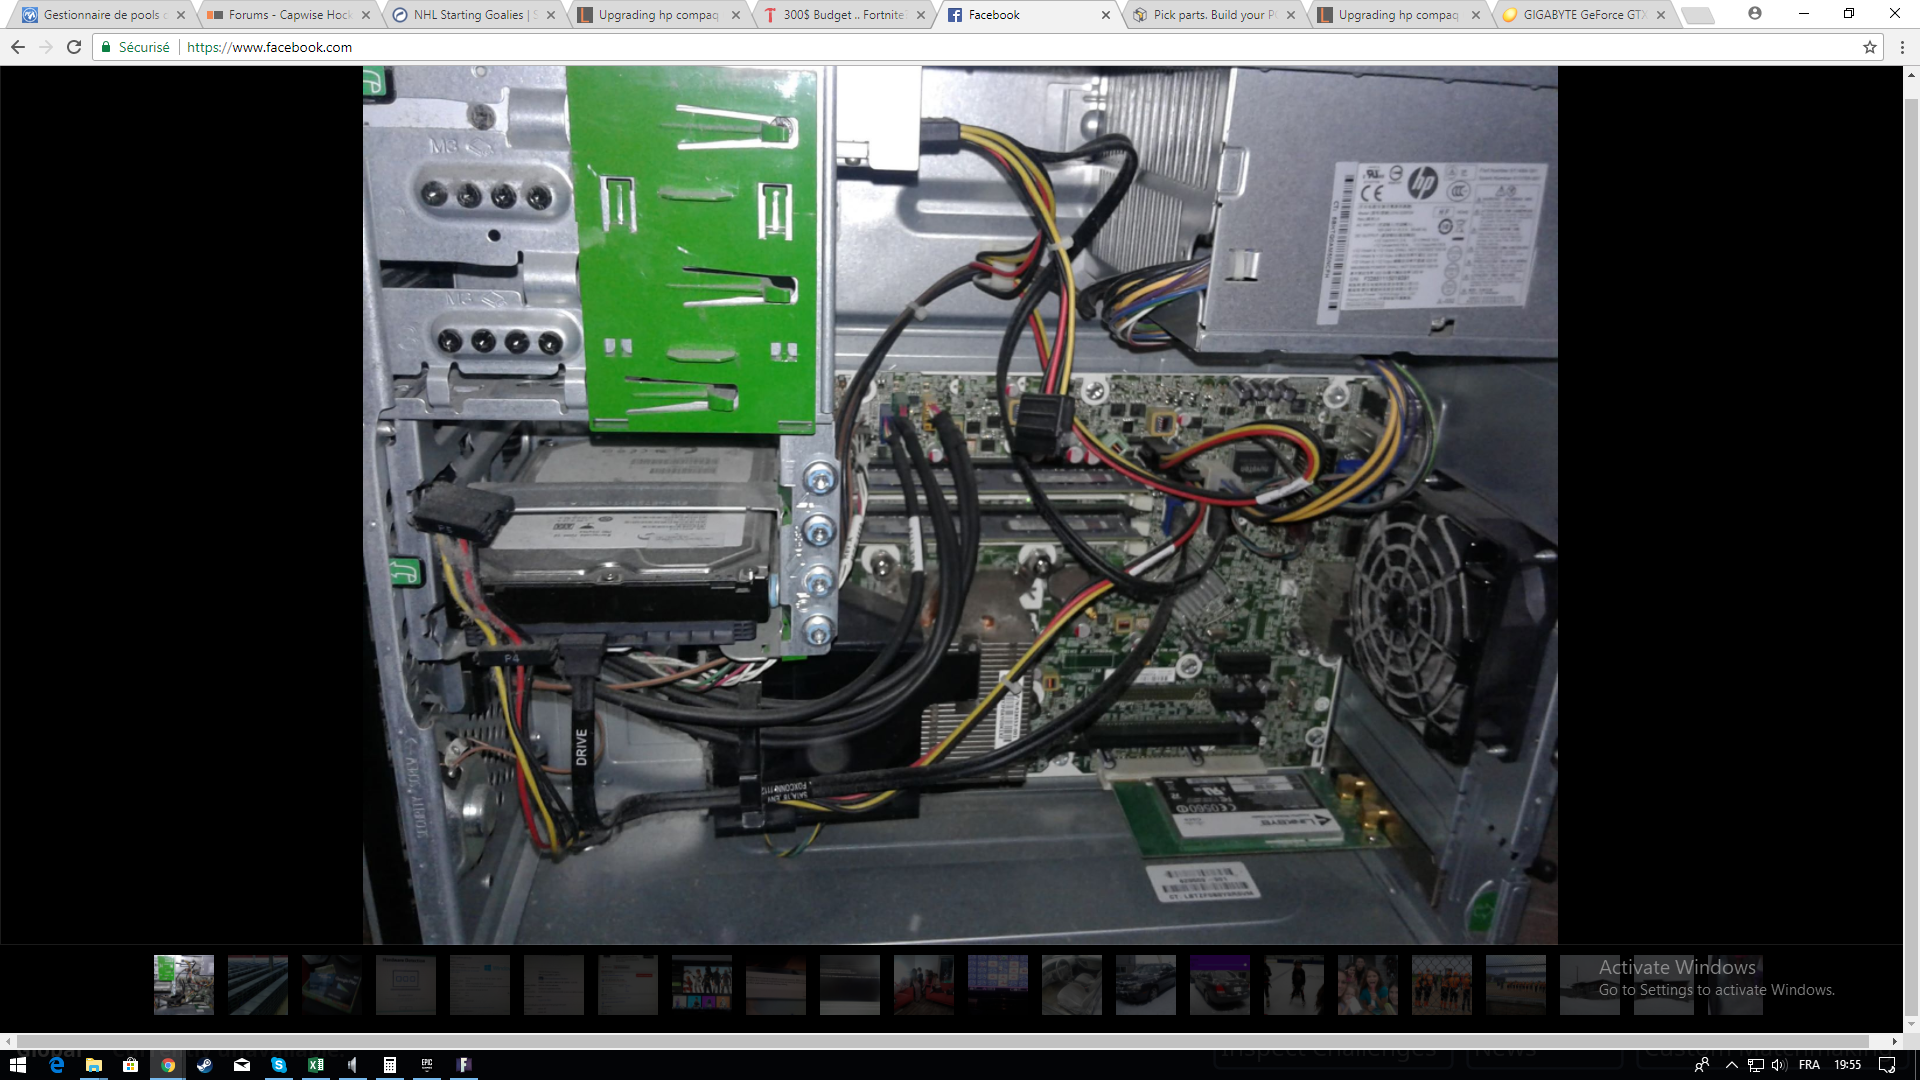 Upgrading hp compaq 6200 - New Builds and Planning - Linus